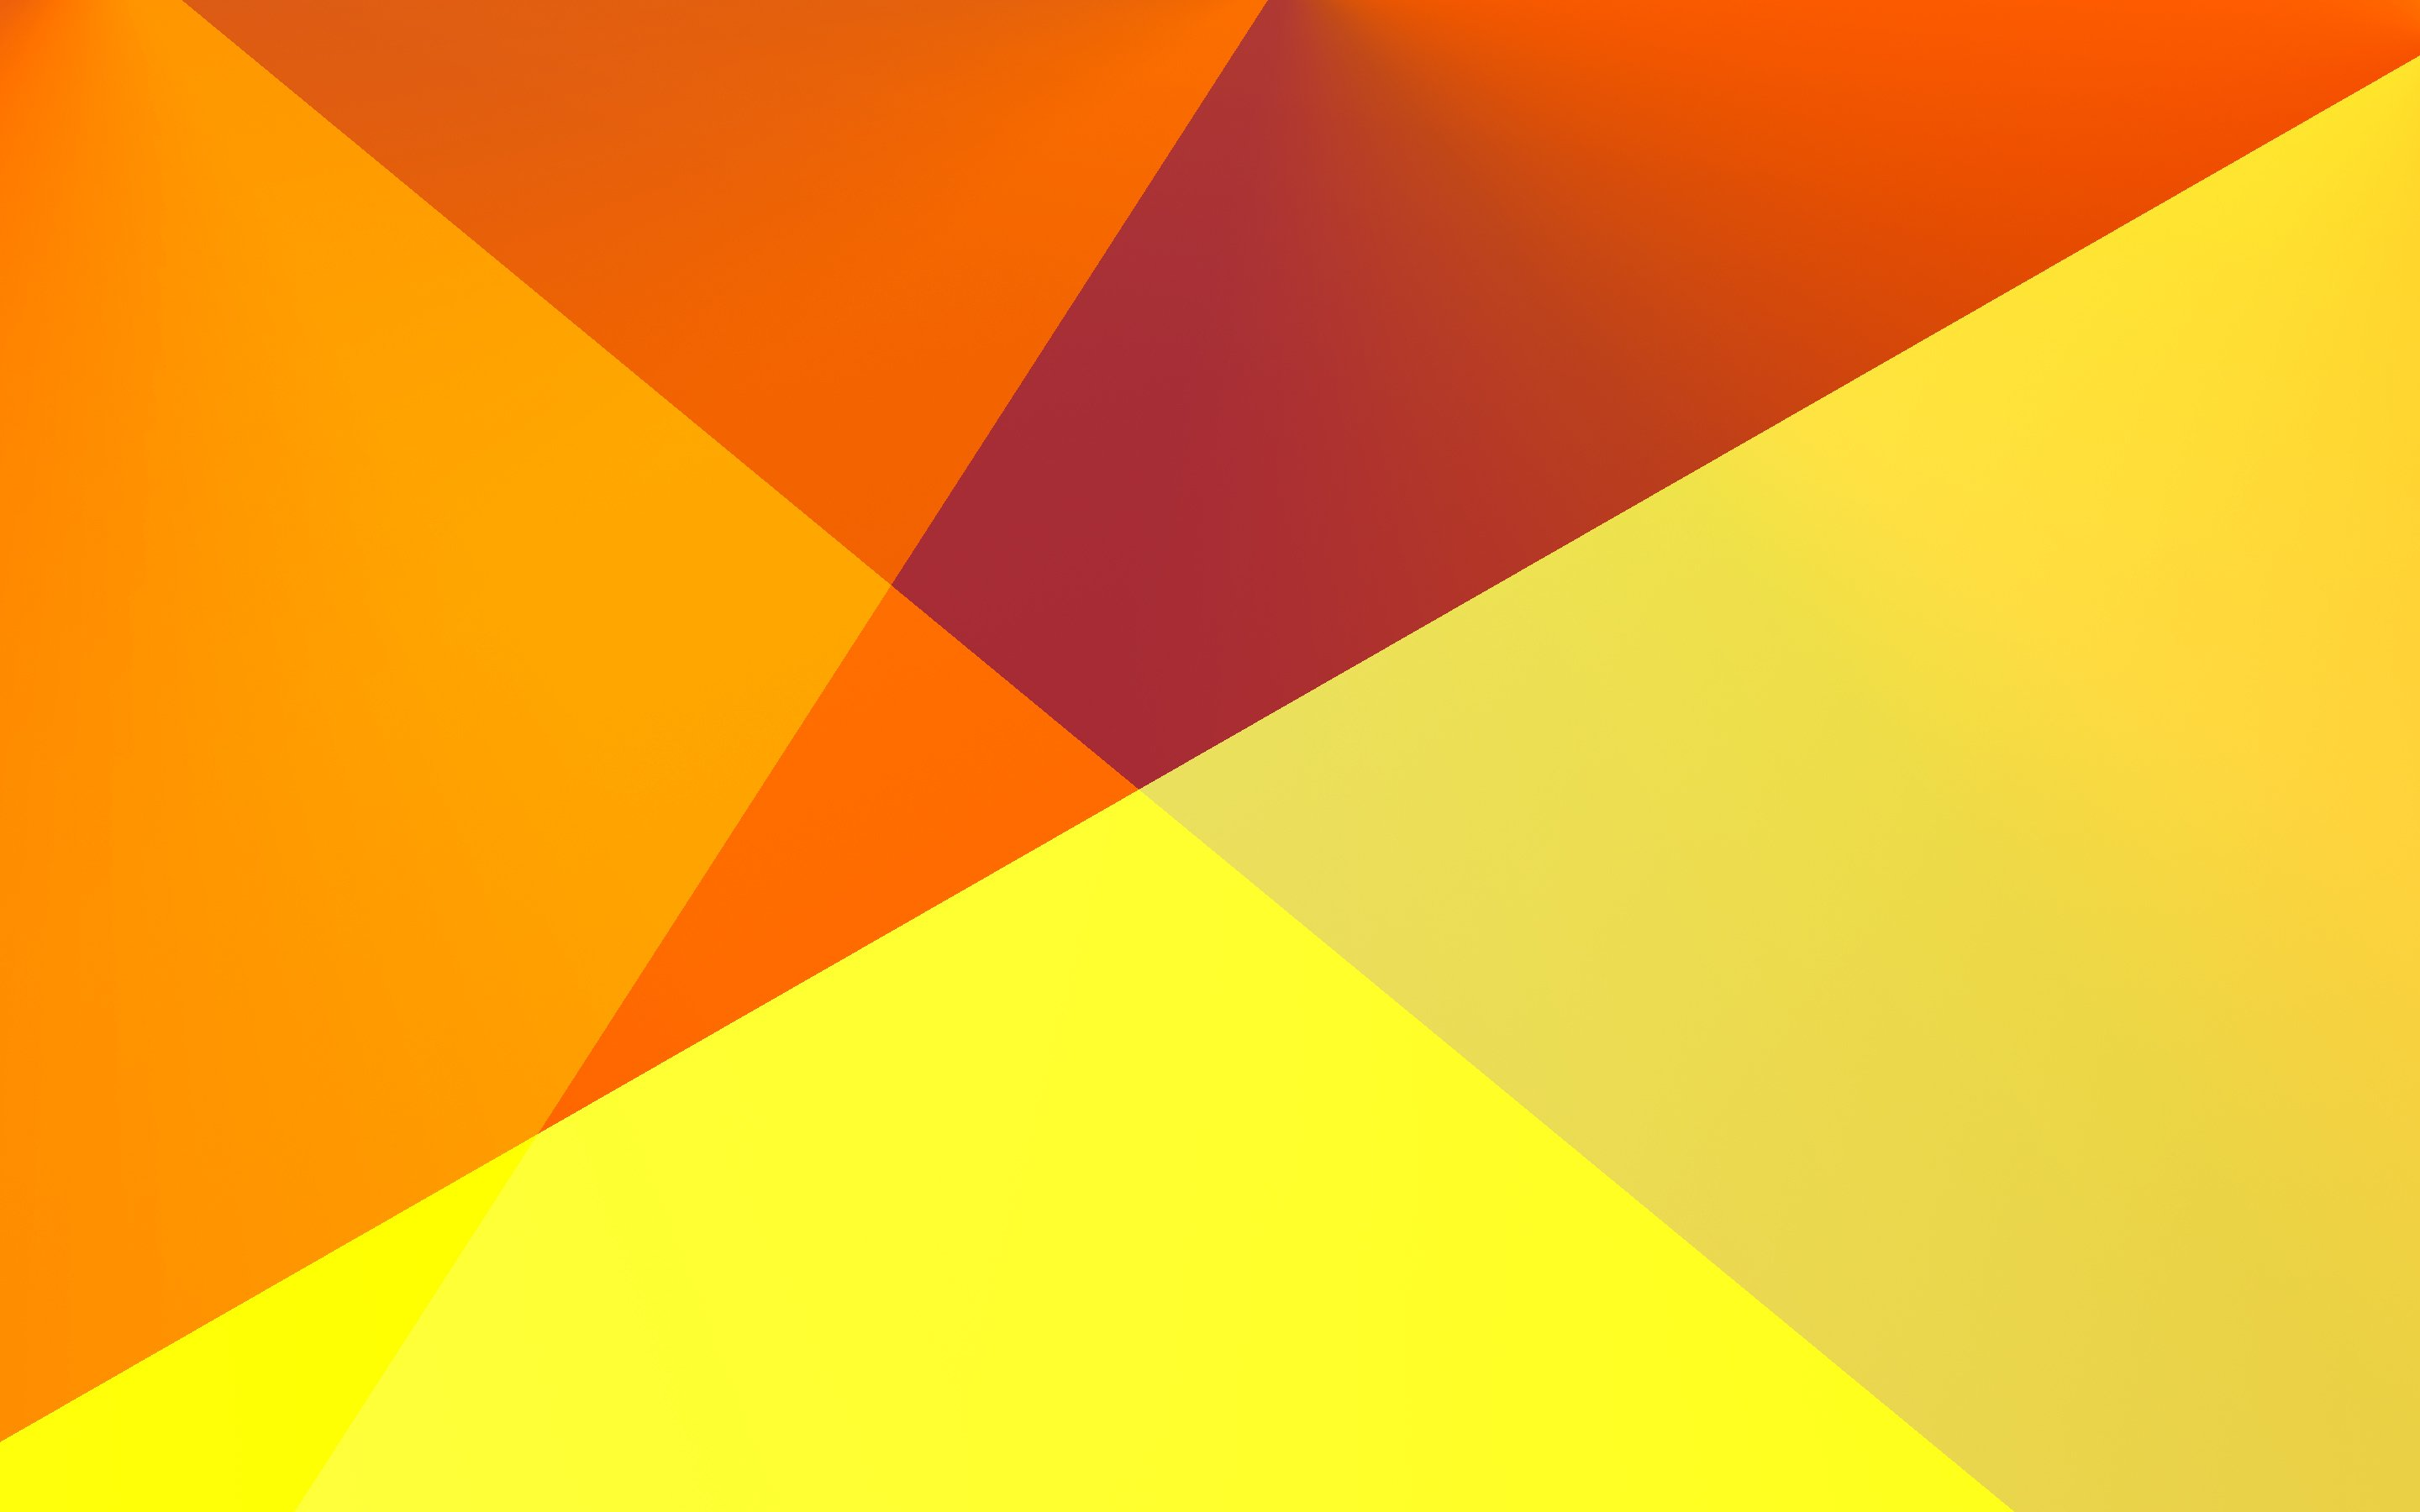 Cool Orange Backgrounds Hd Abstract   orange wallpapers 2880x1800